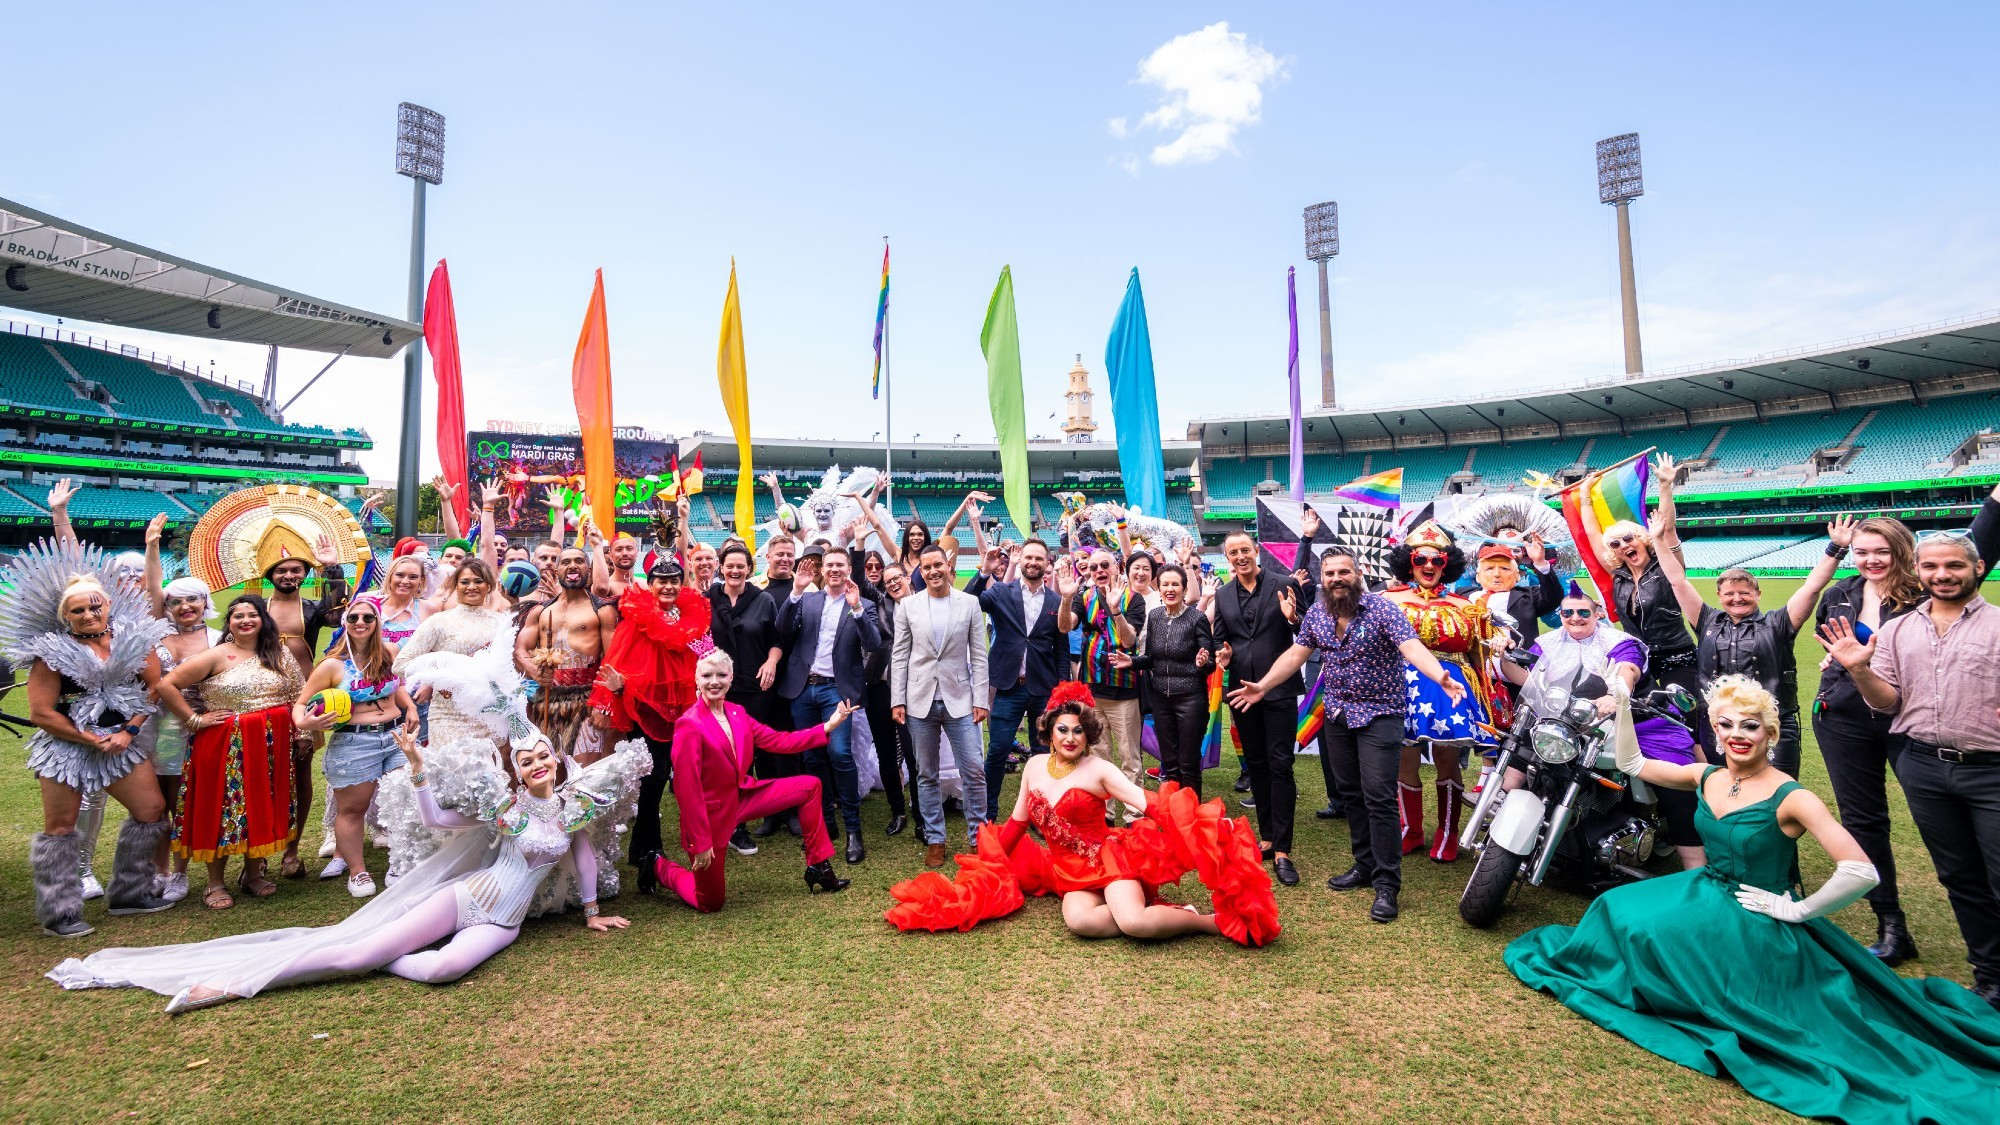 Crowd of performers and representatives gather at the SCG to launch the 2021 Mardi Gras